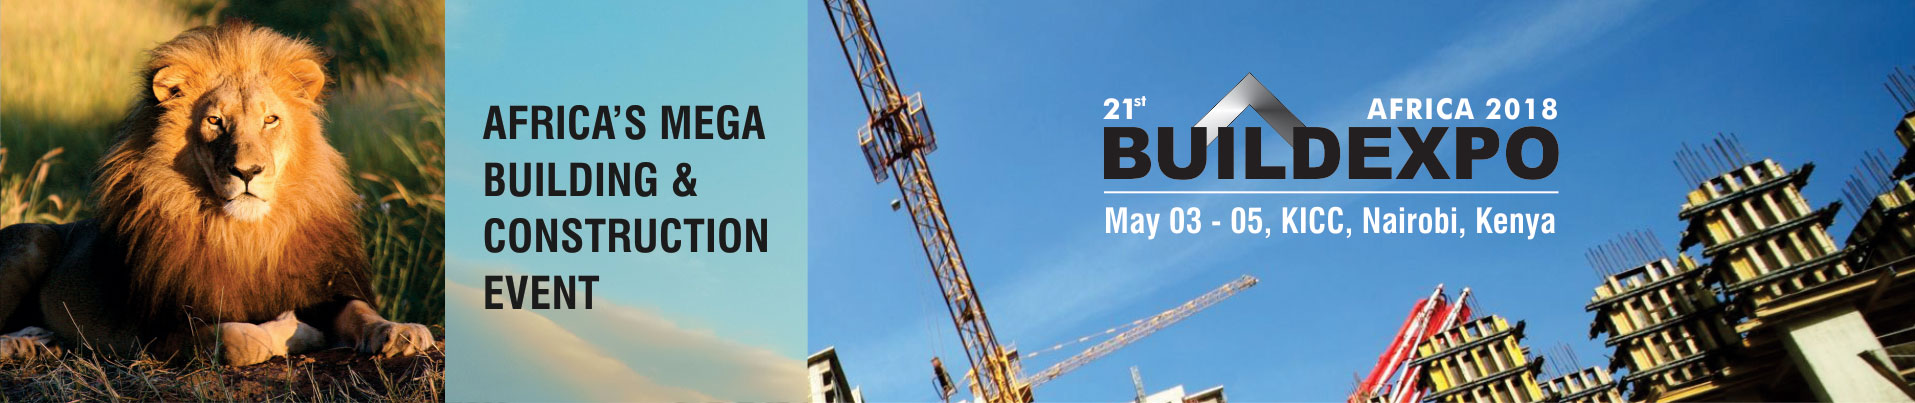 Africa's Mega Building & Construction Event